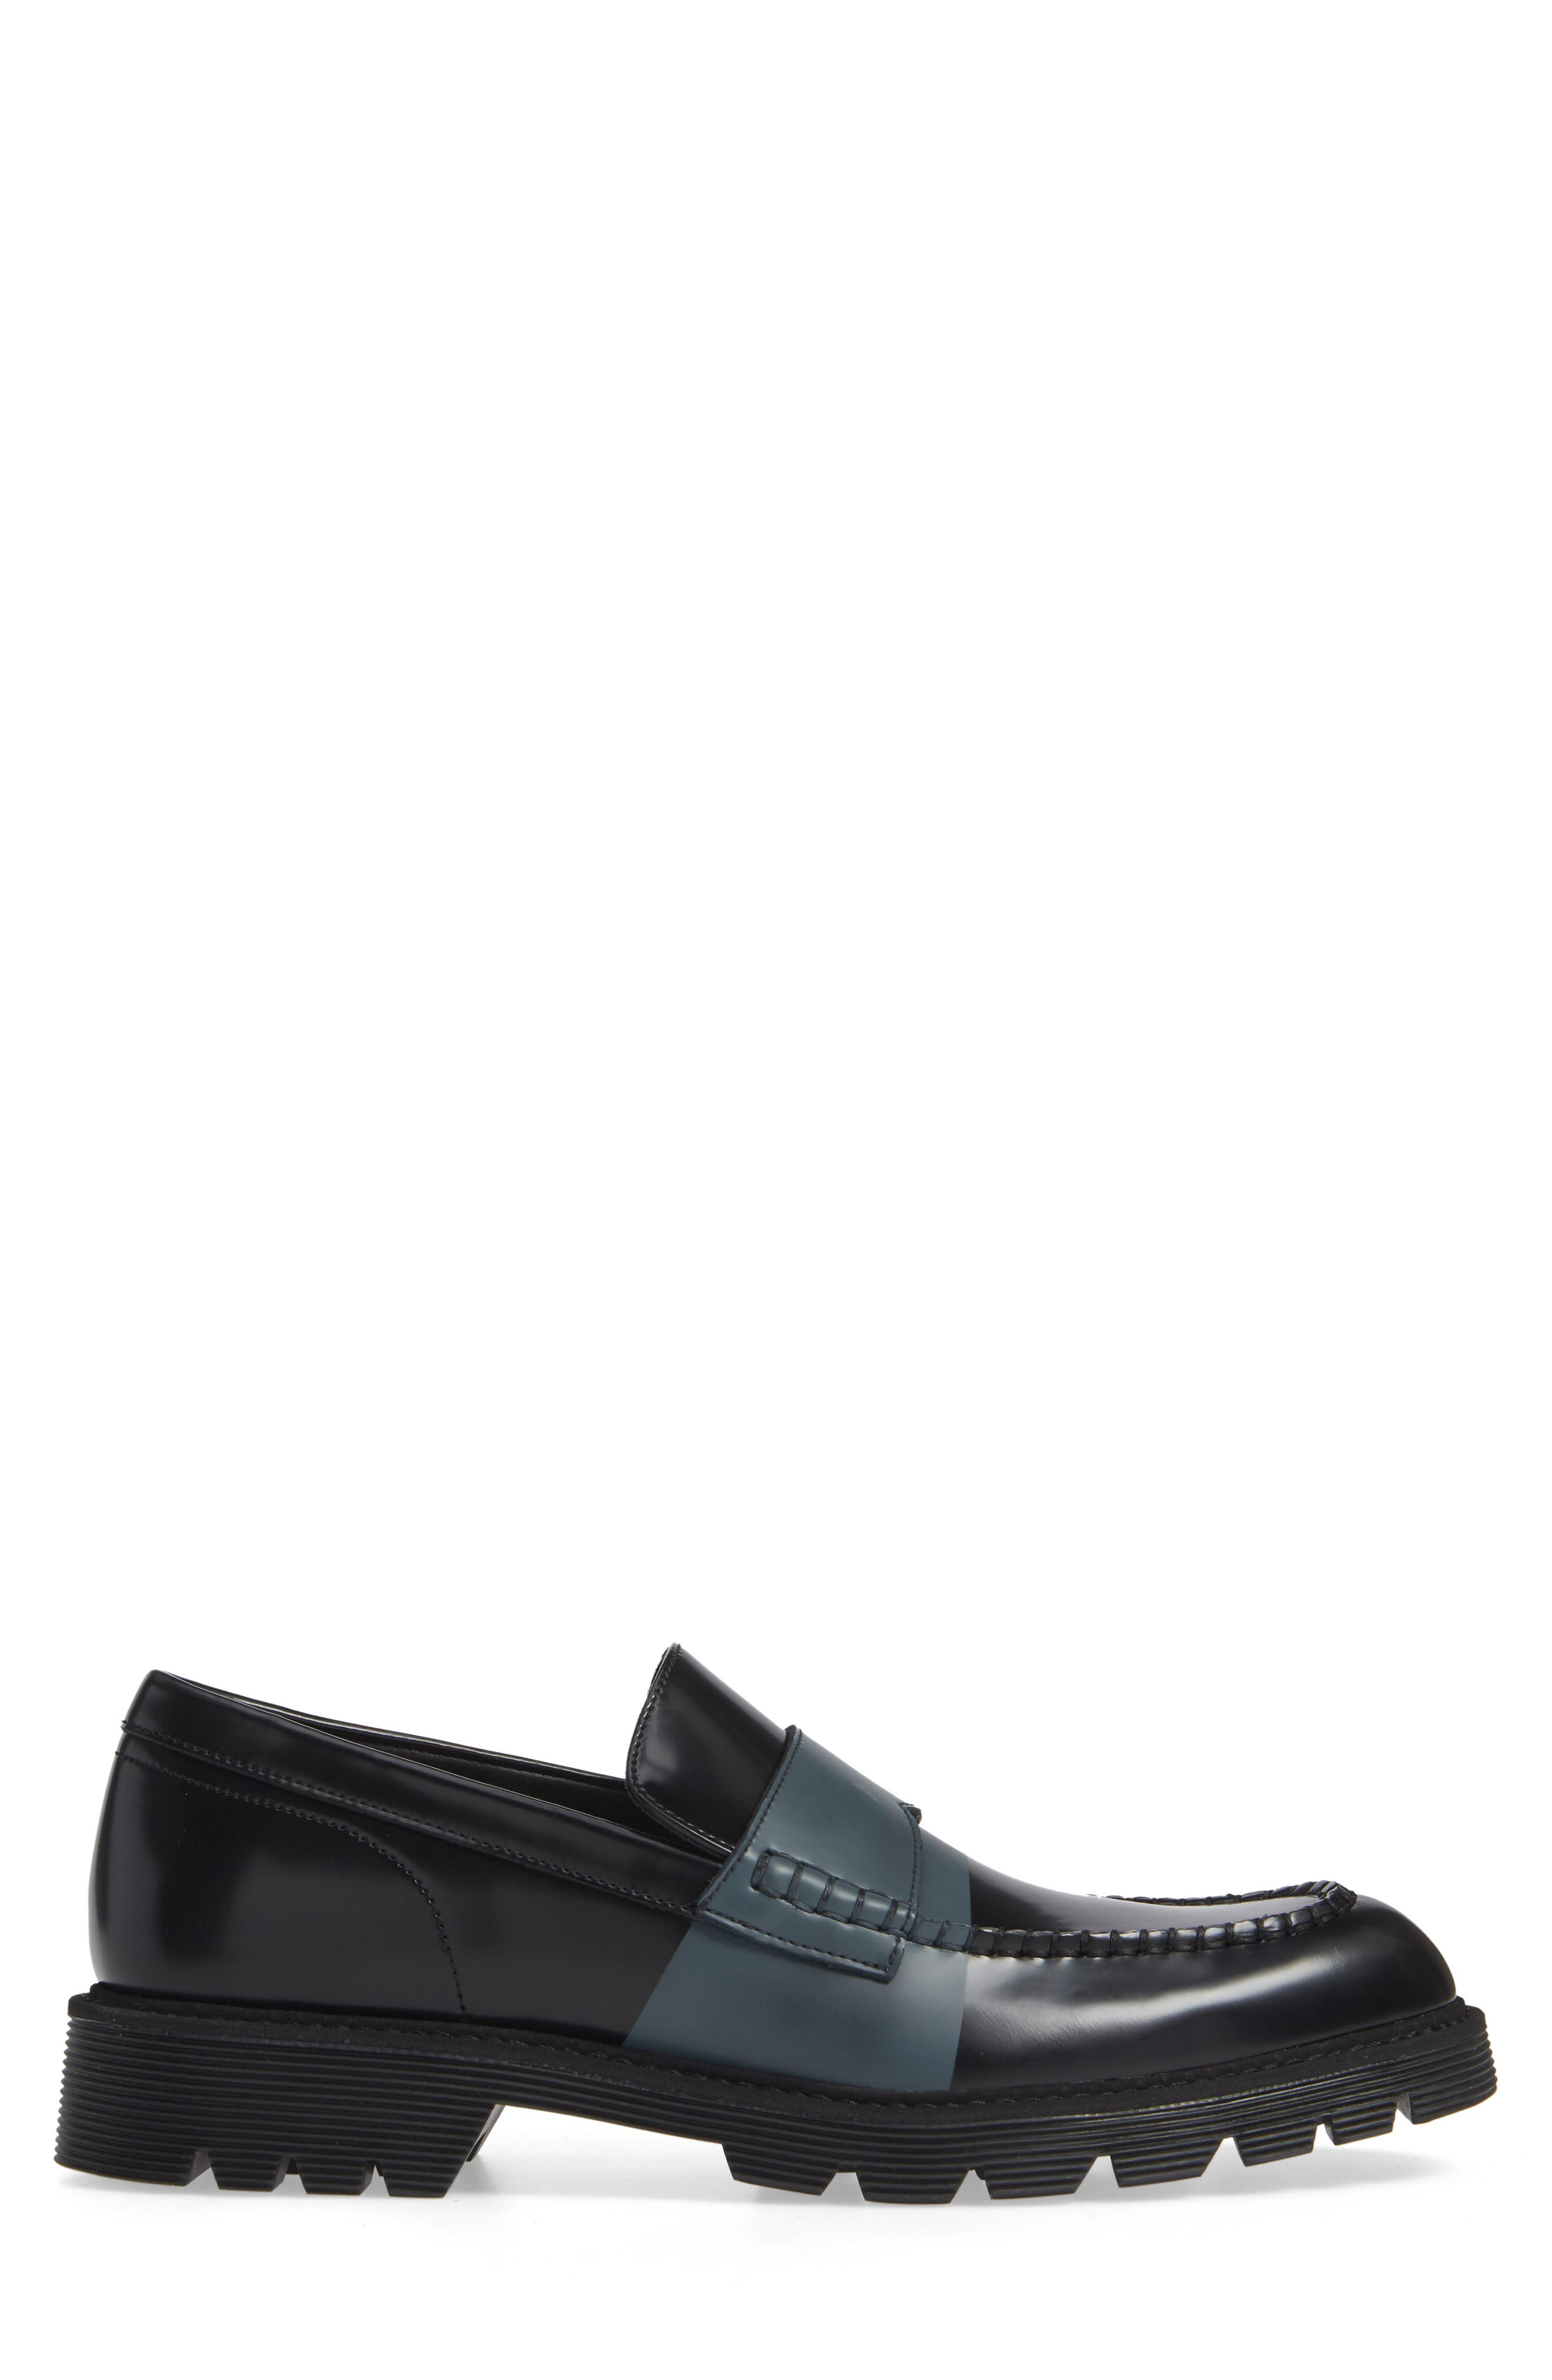 Florentino Penny Loafer,                             Alternate thumbnail 3, color,                             BLACK LEATHER